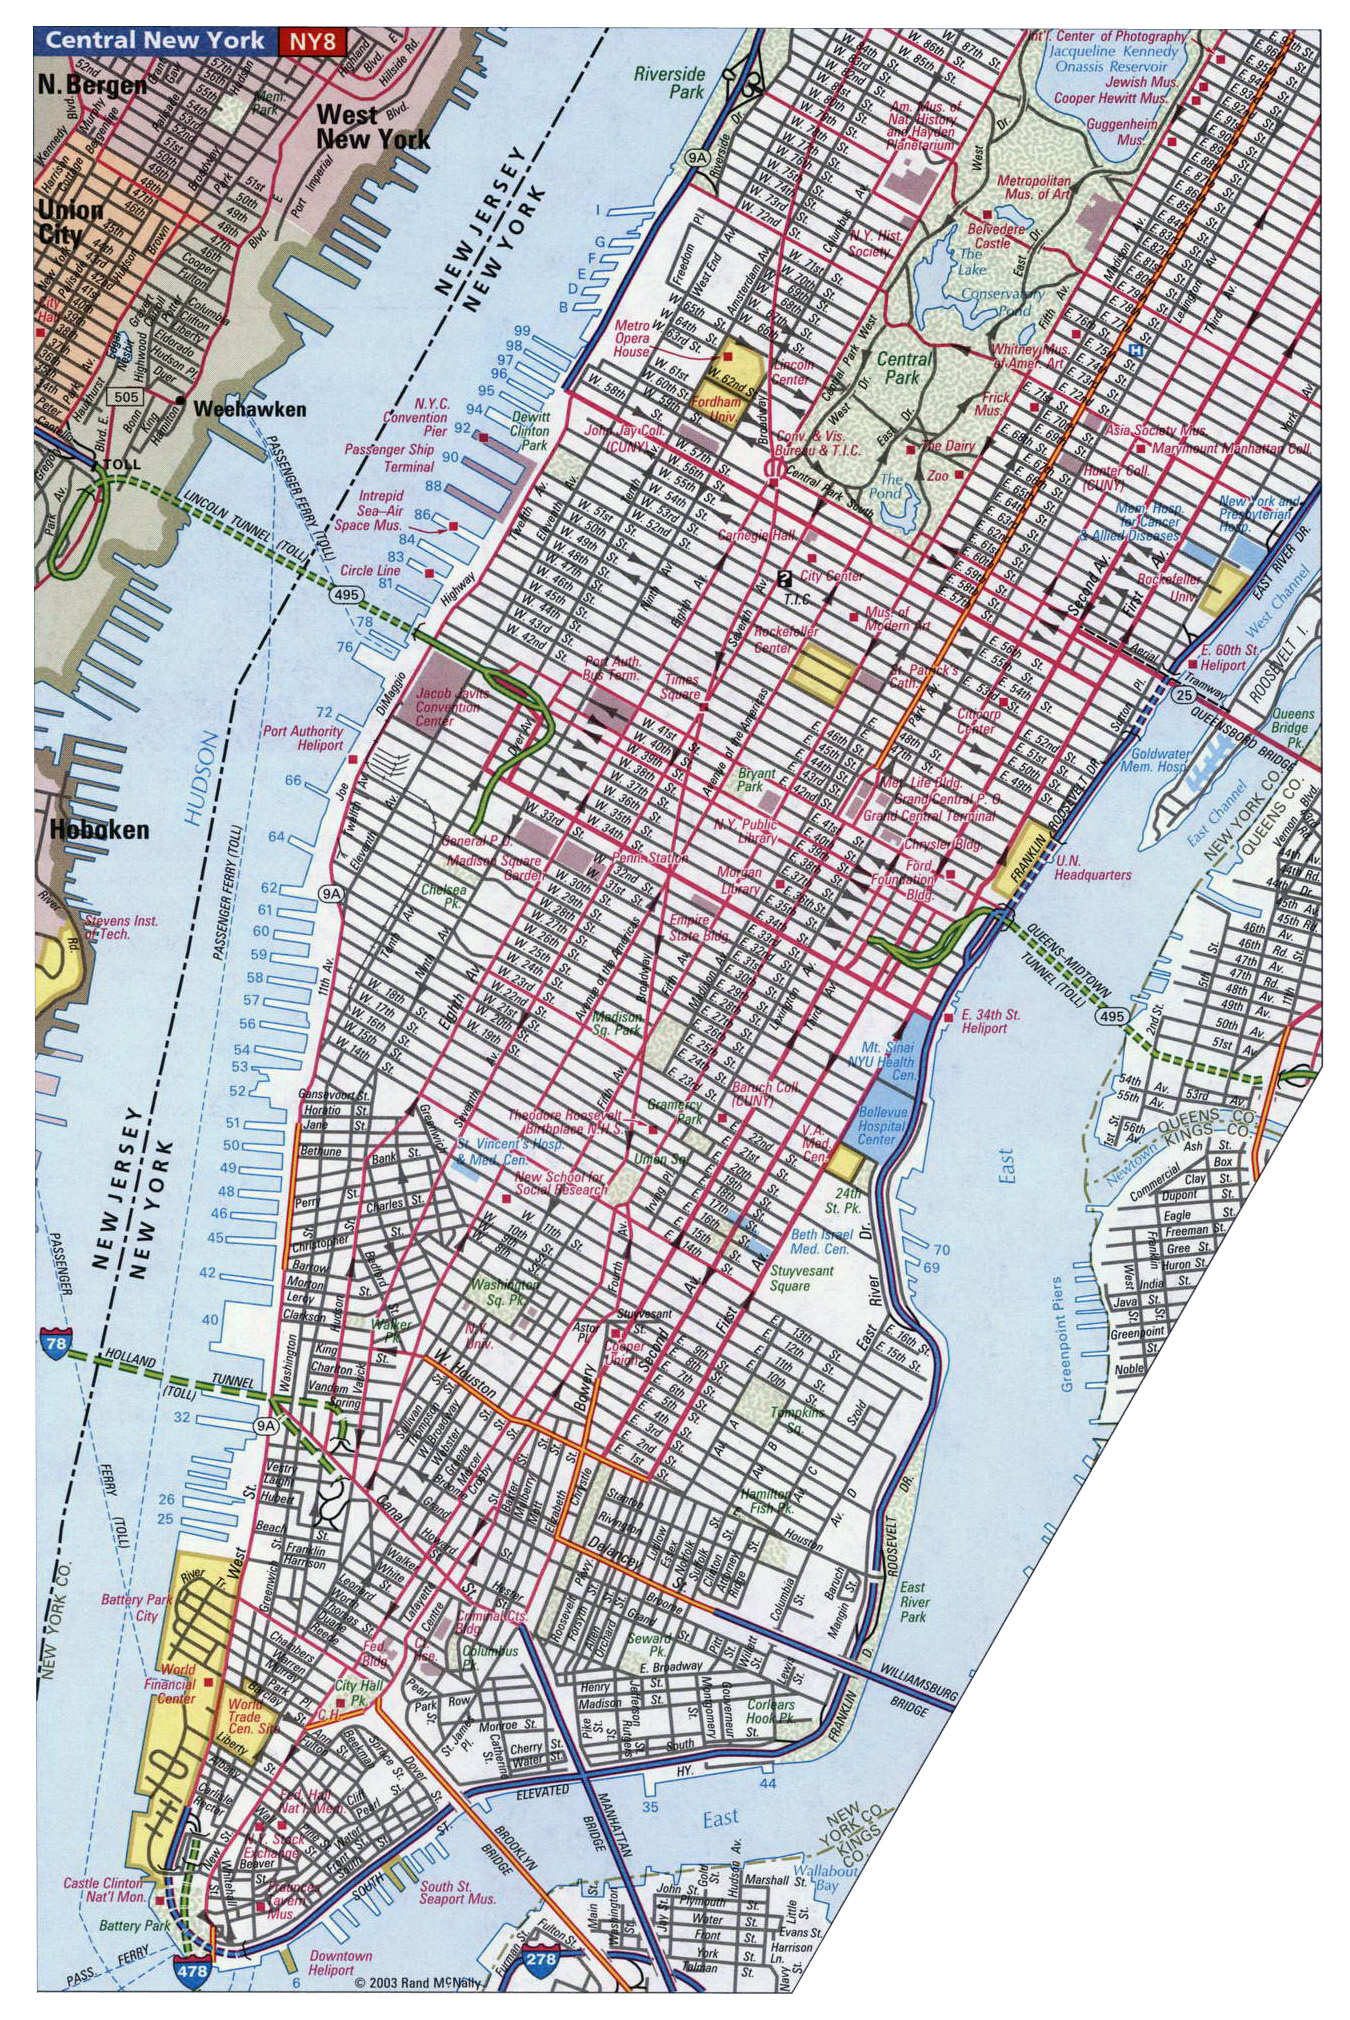 Detailed road map of Manhattan NYC Manhattan NYC detailed road